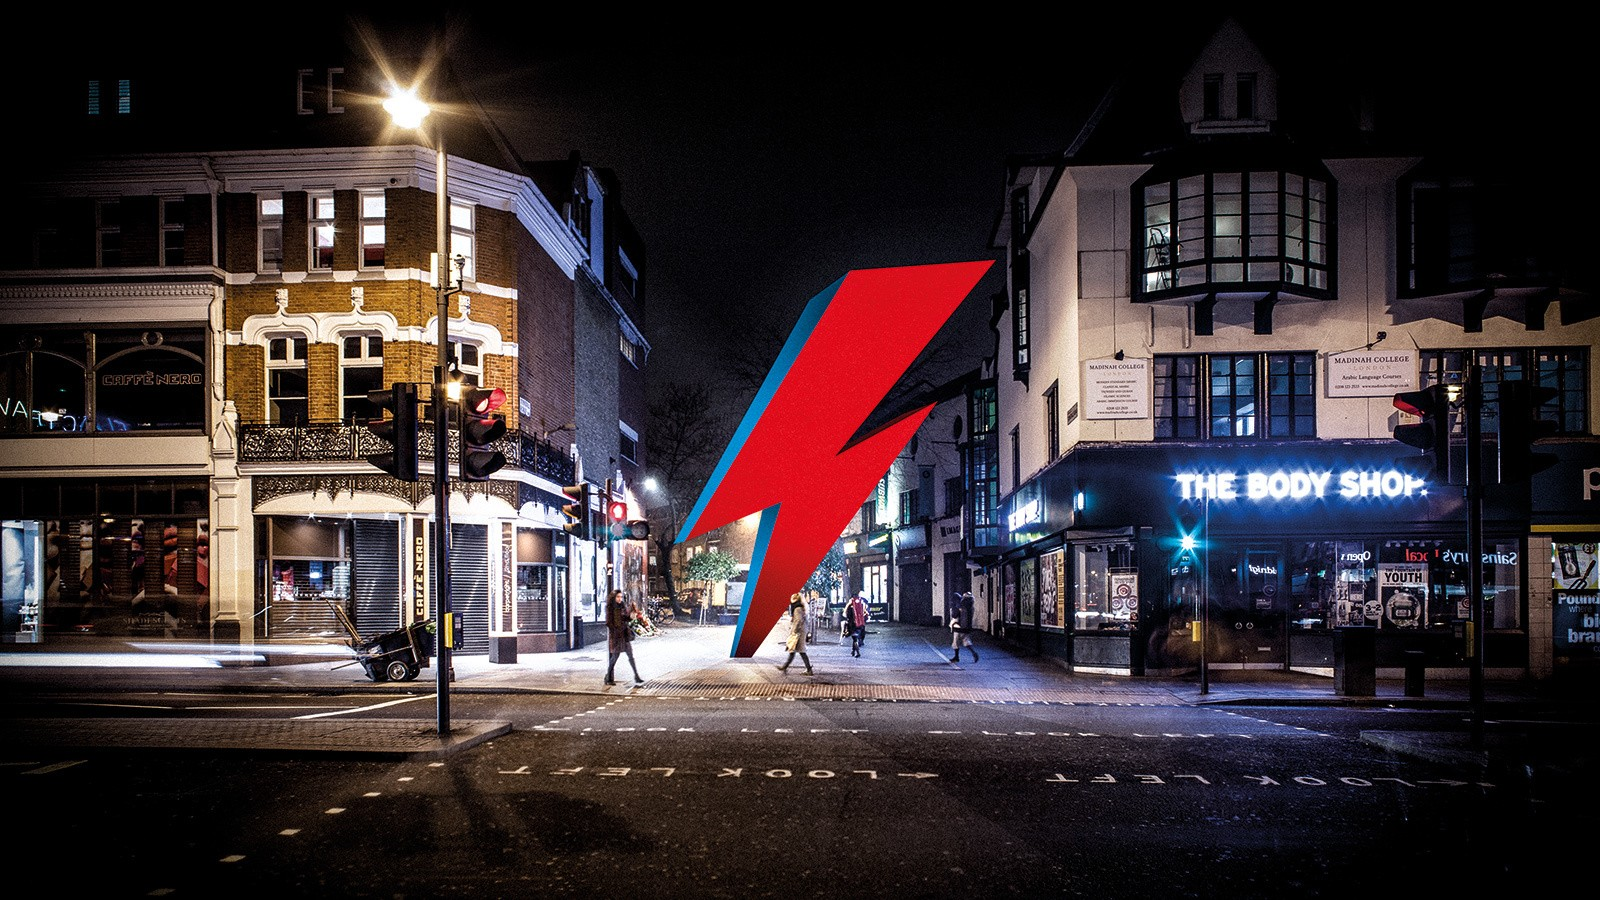 london will honor david bowie with a three story lightning bolt sculpture